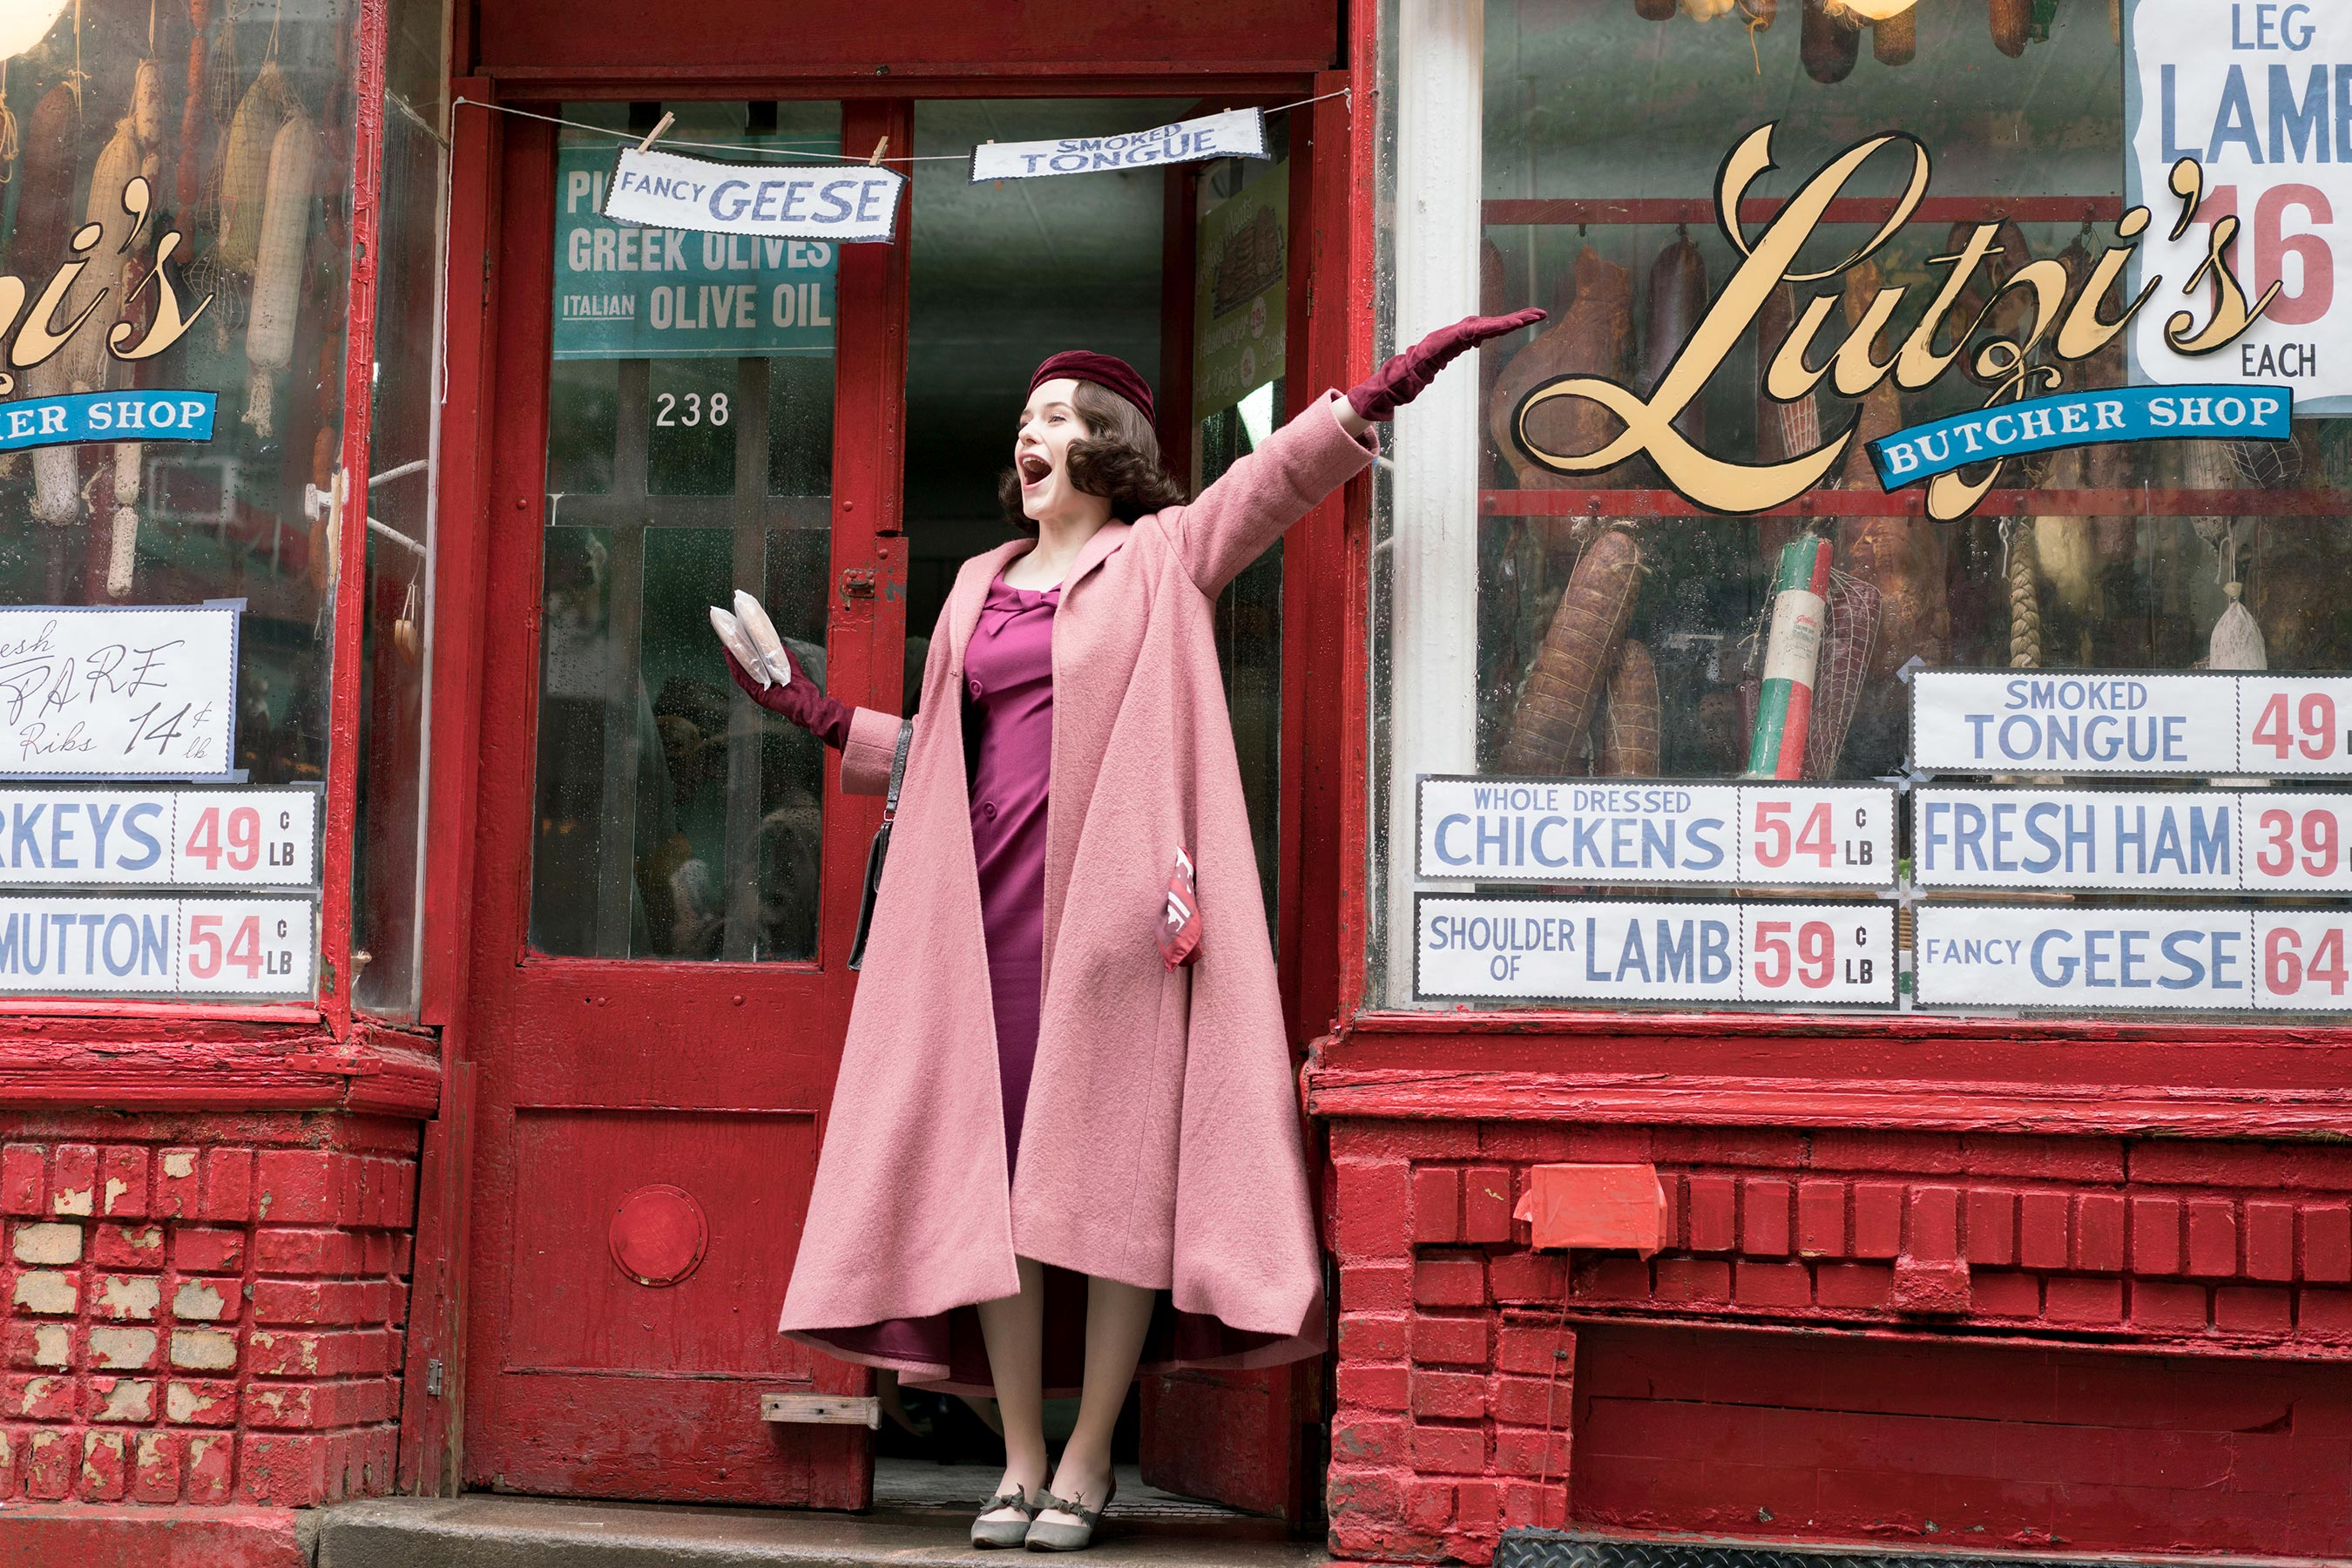 The Marvelous Mrs. Maisel to stream on Amazon for free to celebrate Golden Globes wins